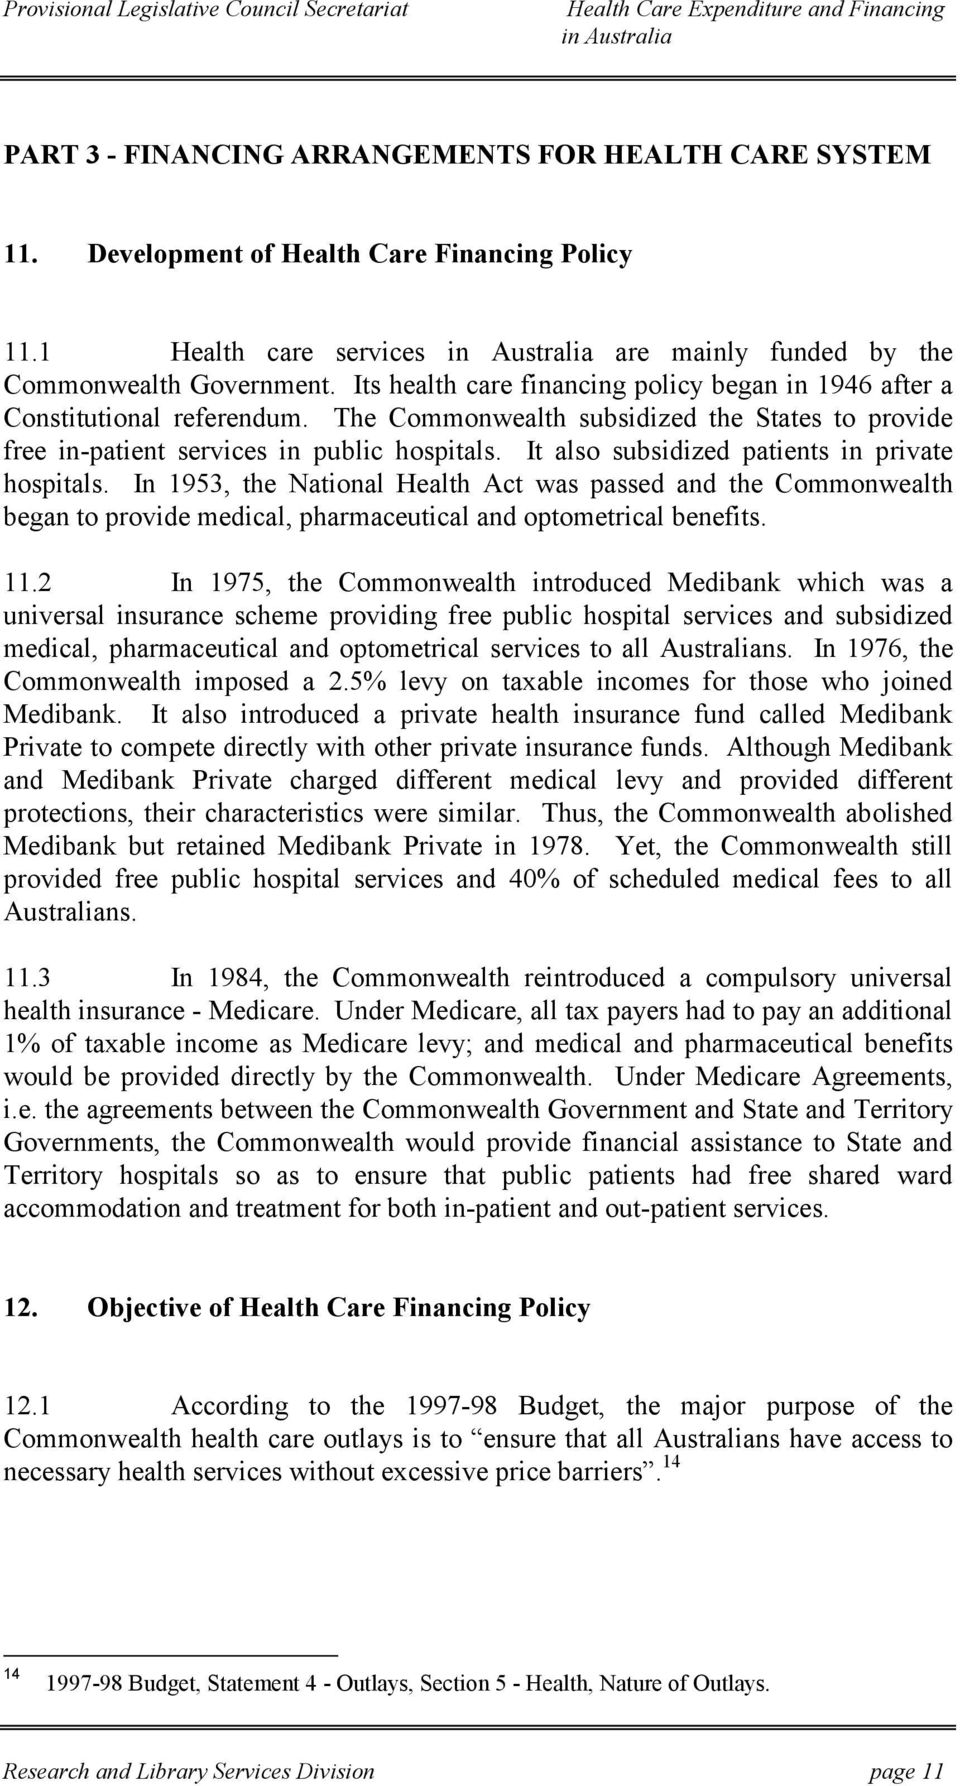 It also subsidized patients in private hospitals. In 1953, the National Health Act was passed and the Commonwealth began to provide medical, pharmaceutical and optometrical benefits. 11.